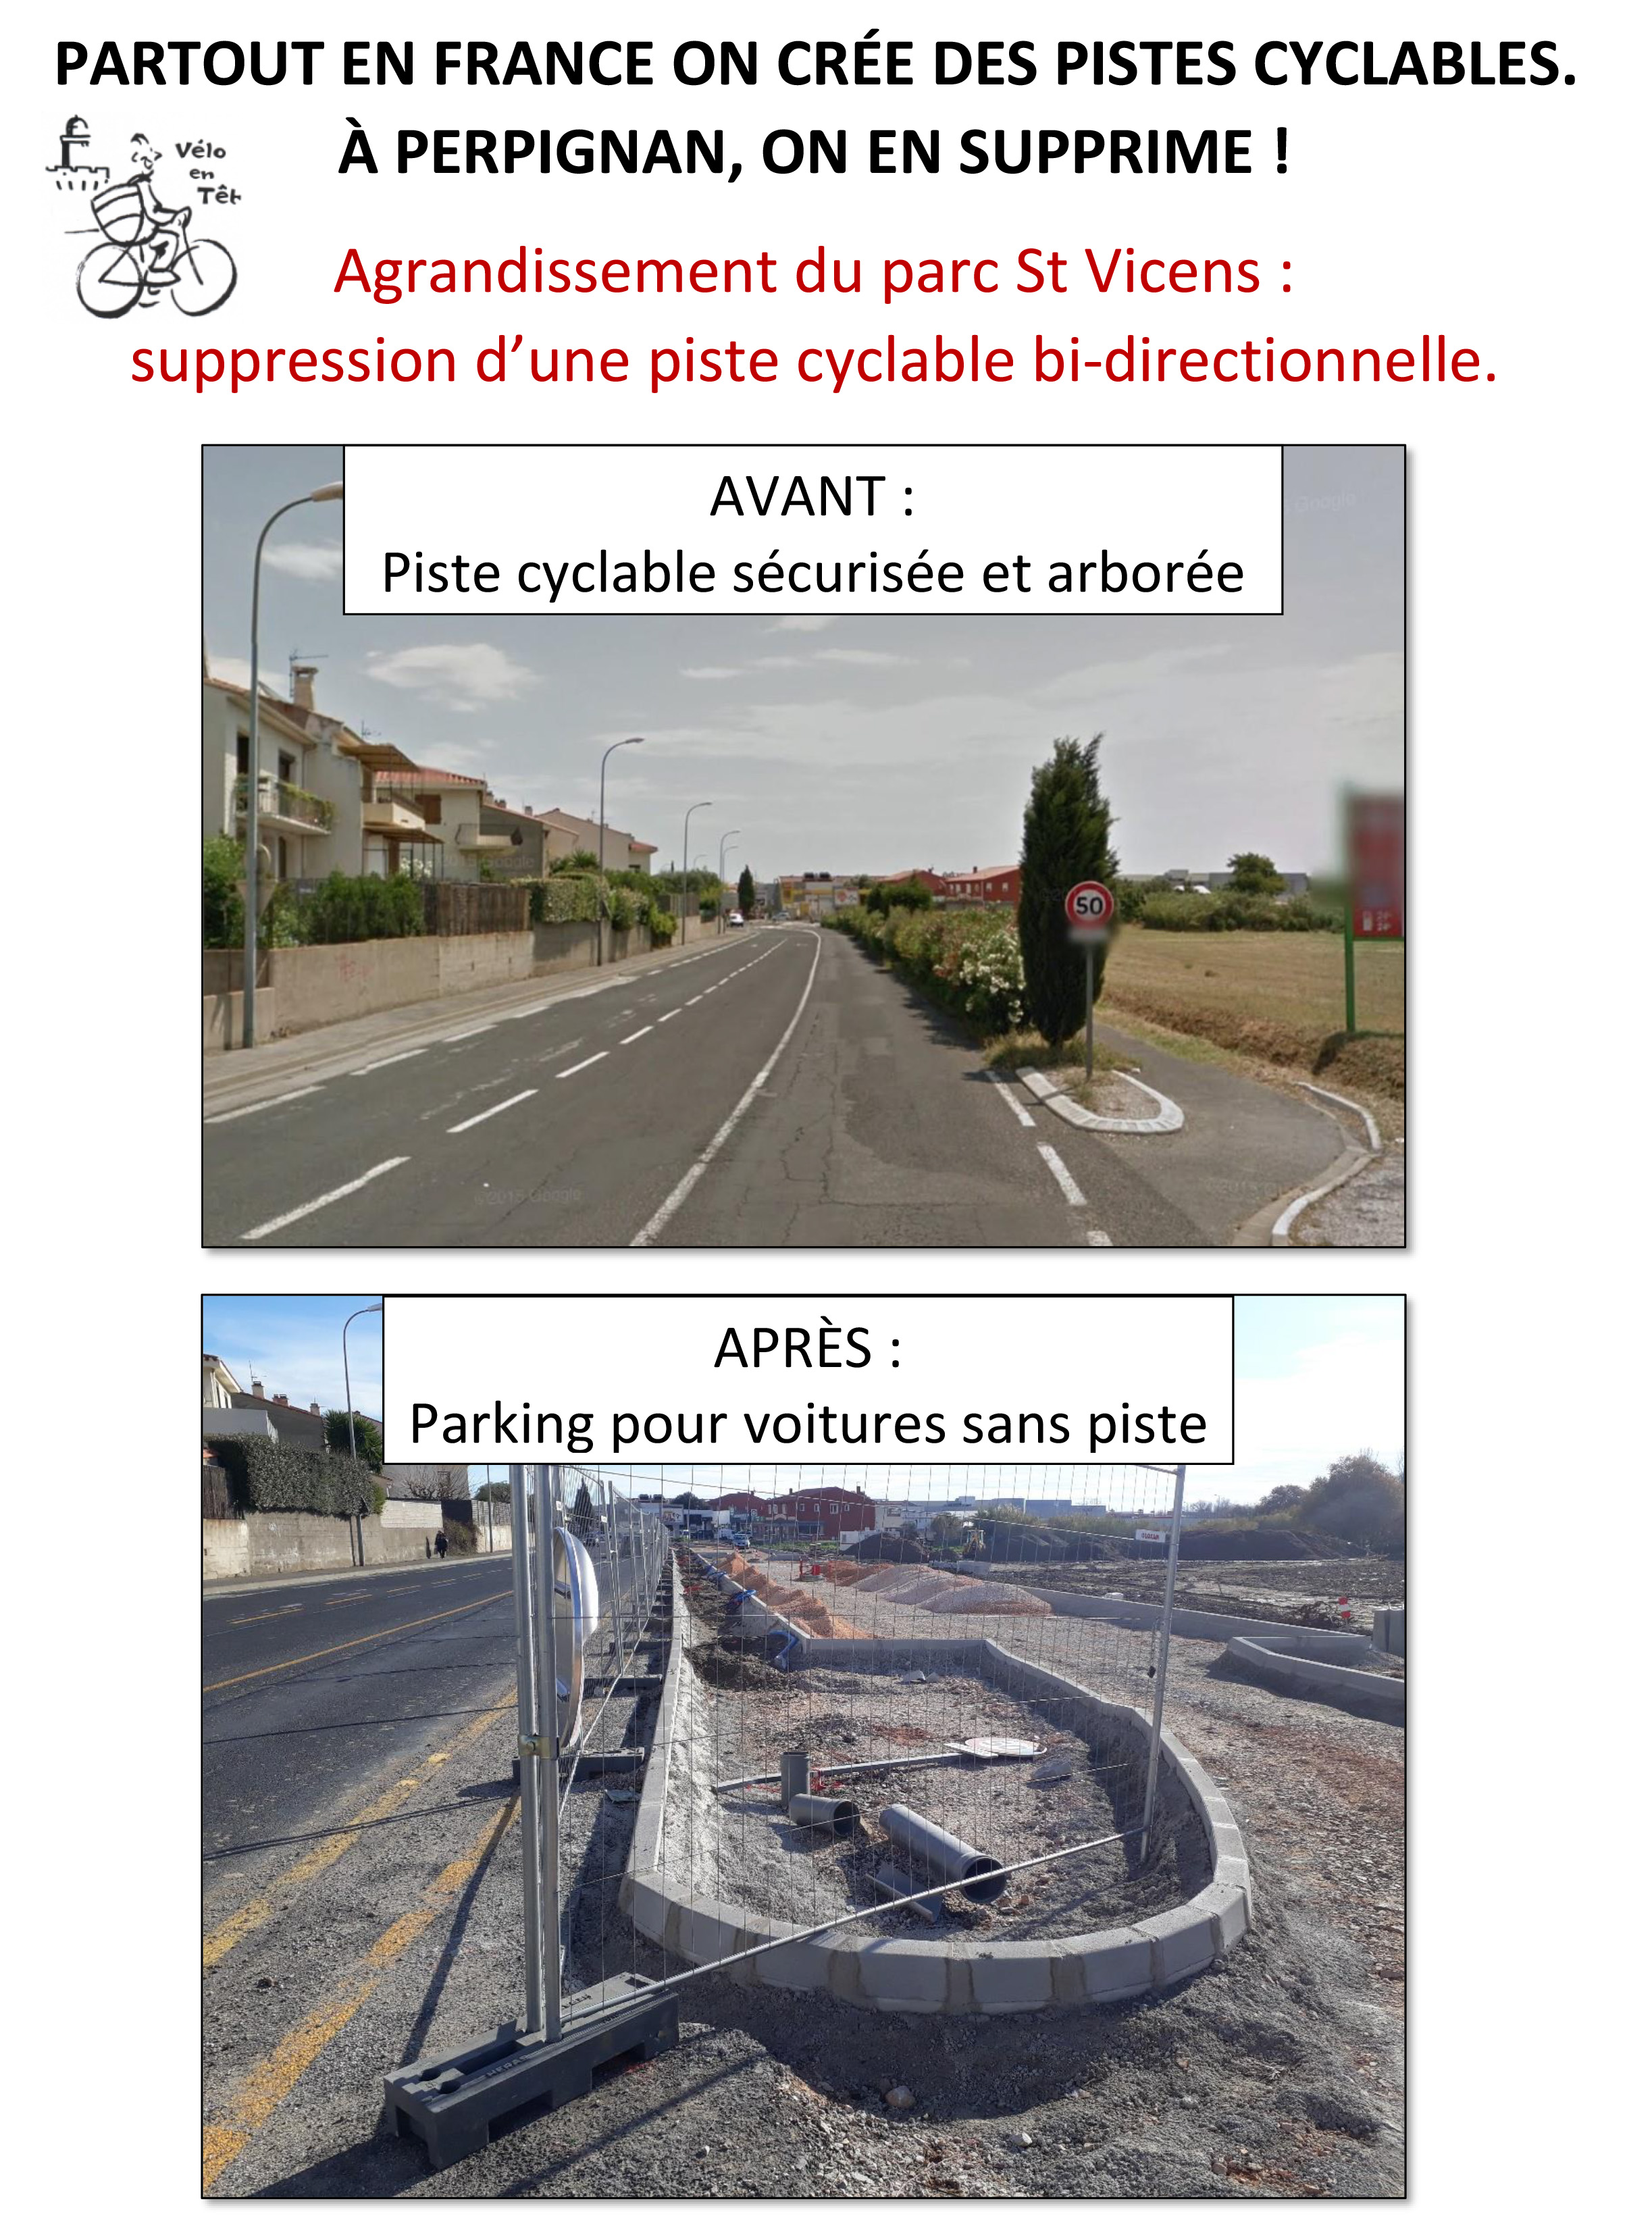 suppression d'une piste cyclable bi-directionnelle.